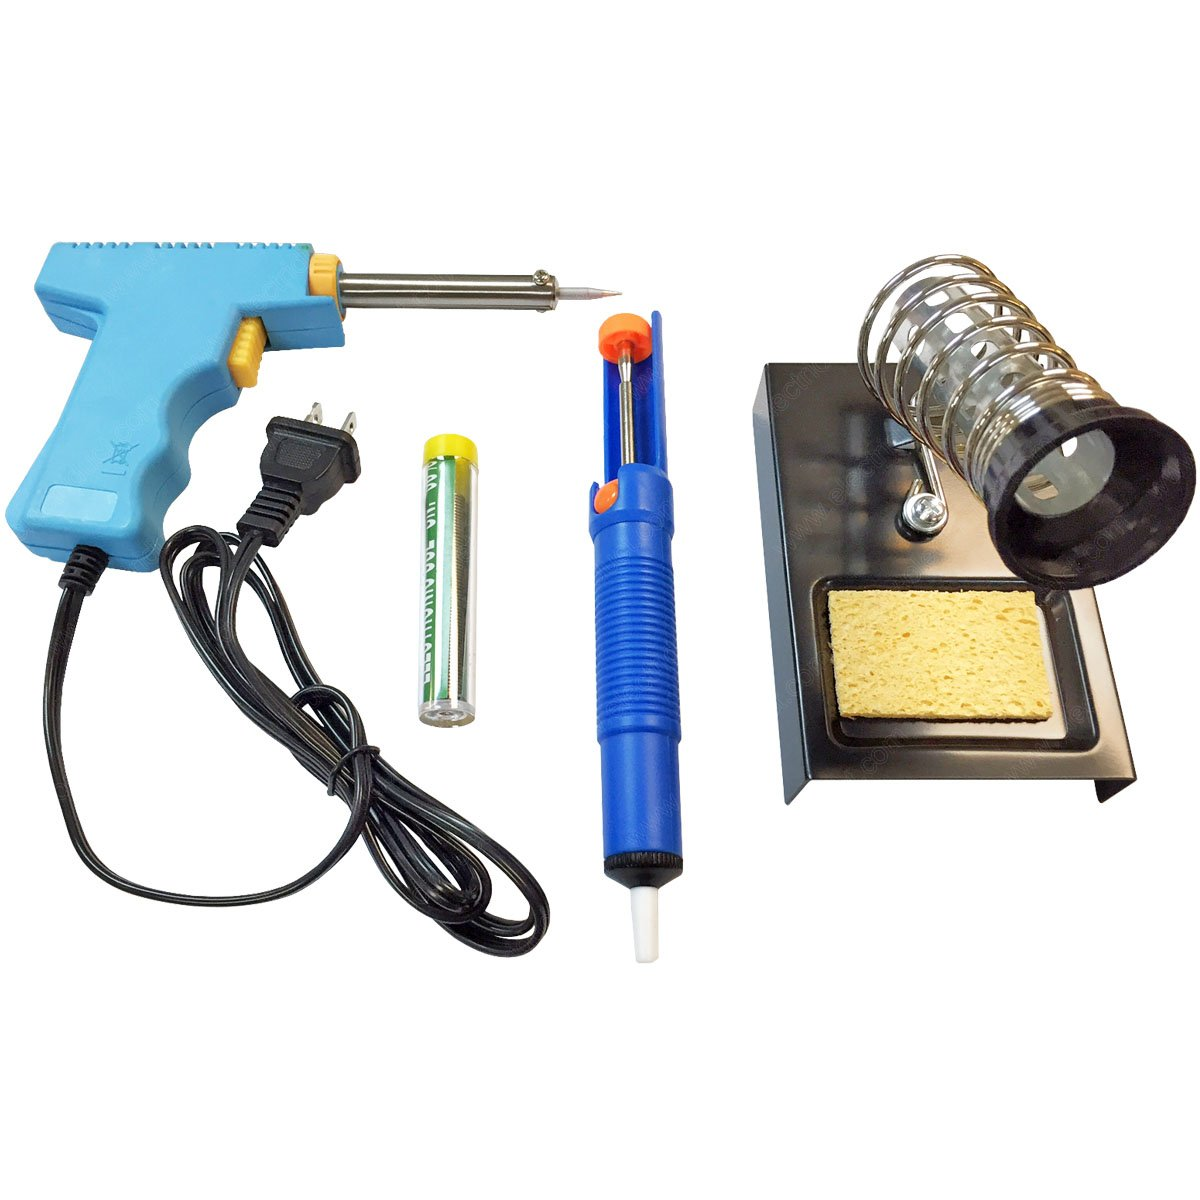 Helping Hand Magnifying Glass with LED Lights and Soldering Stand (TL-ZS-STAND-10MB) Electriduct